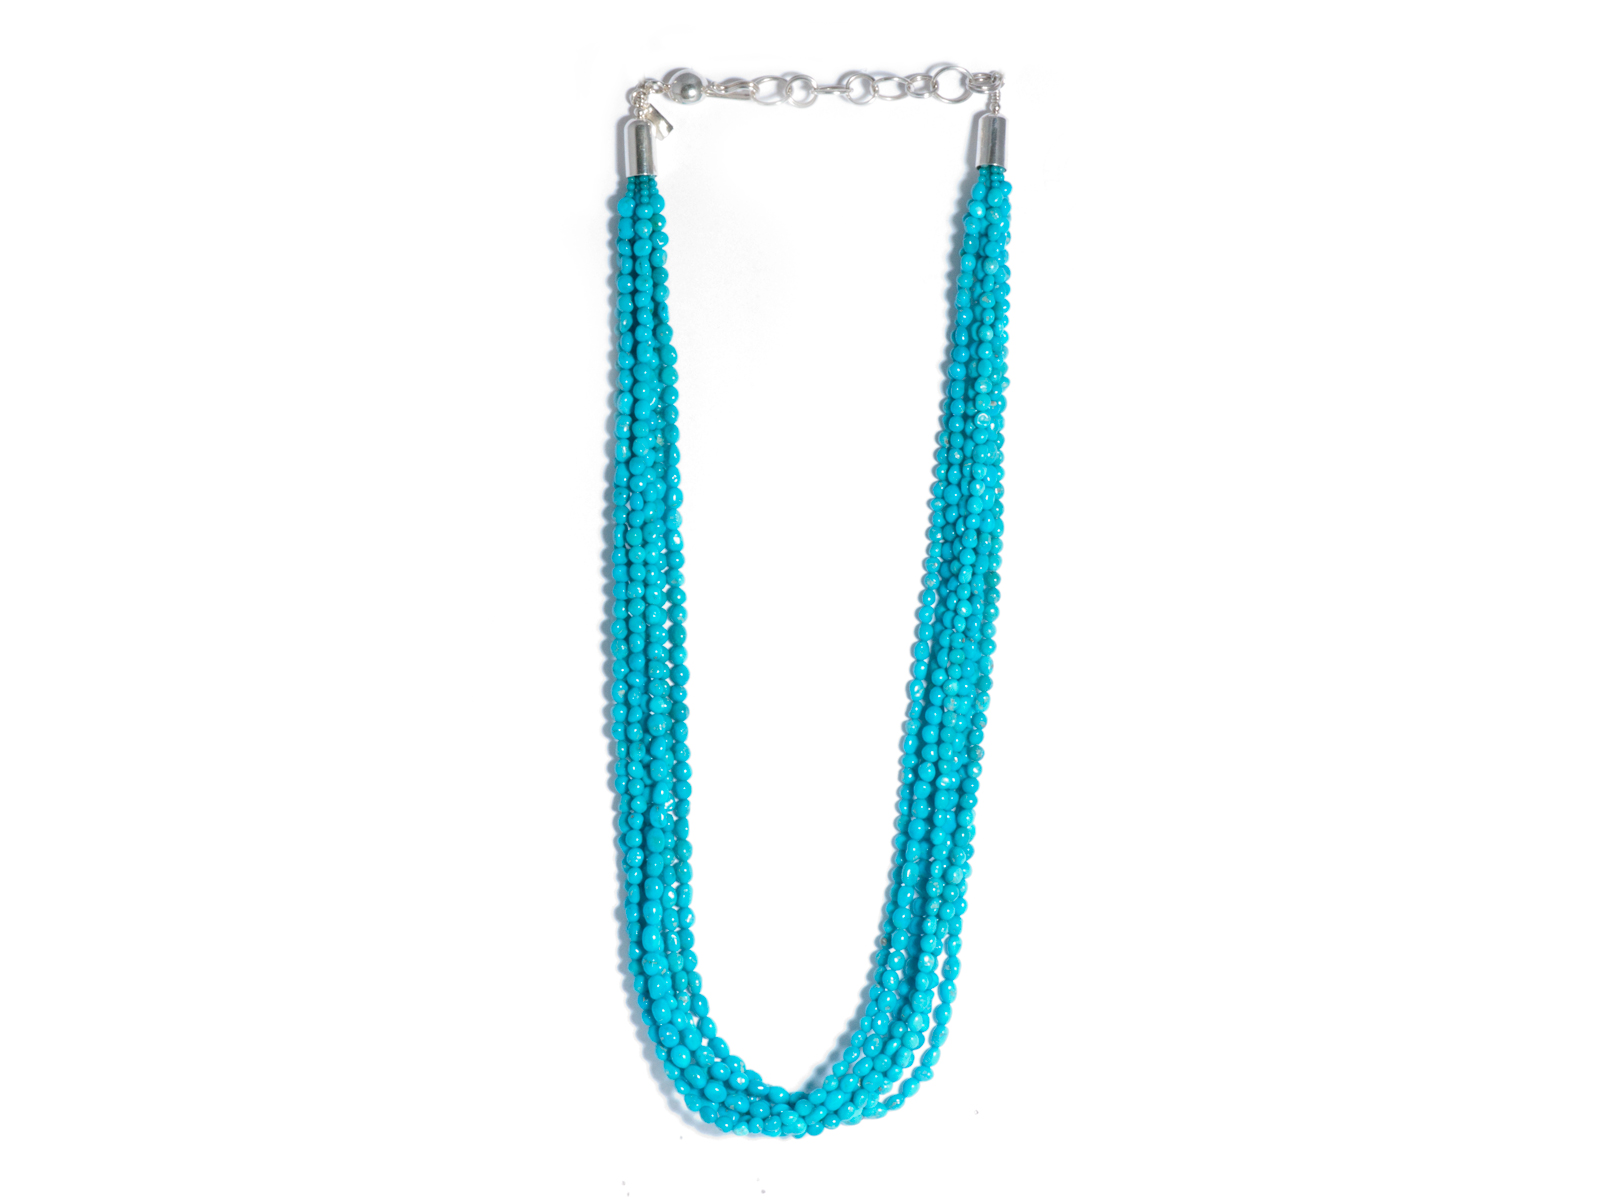 7 Strand Sleeping Beauty Turquoise Beaded Necklace